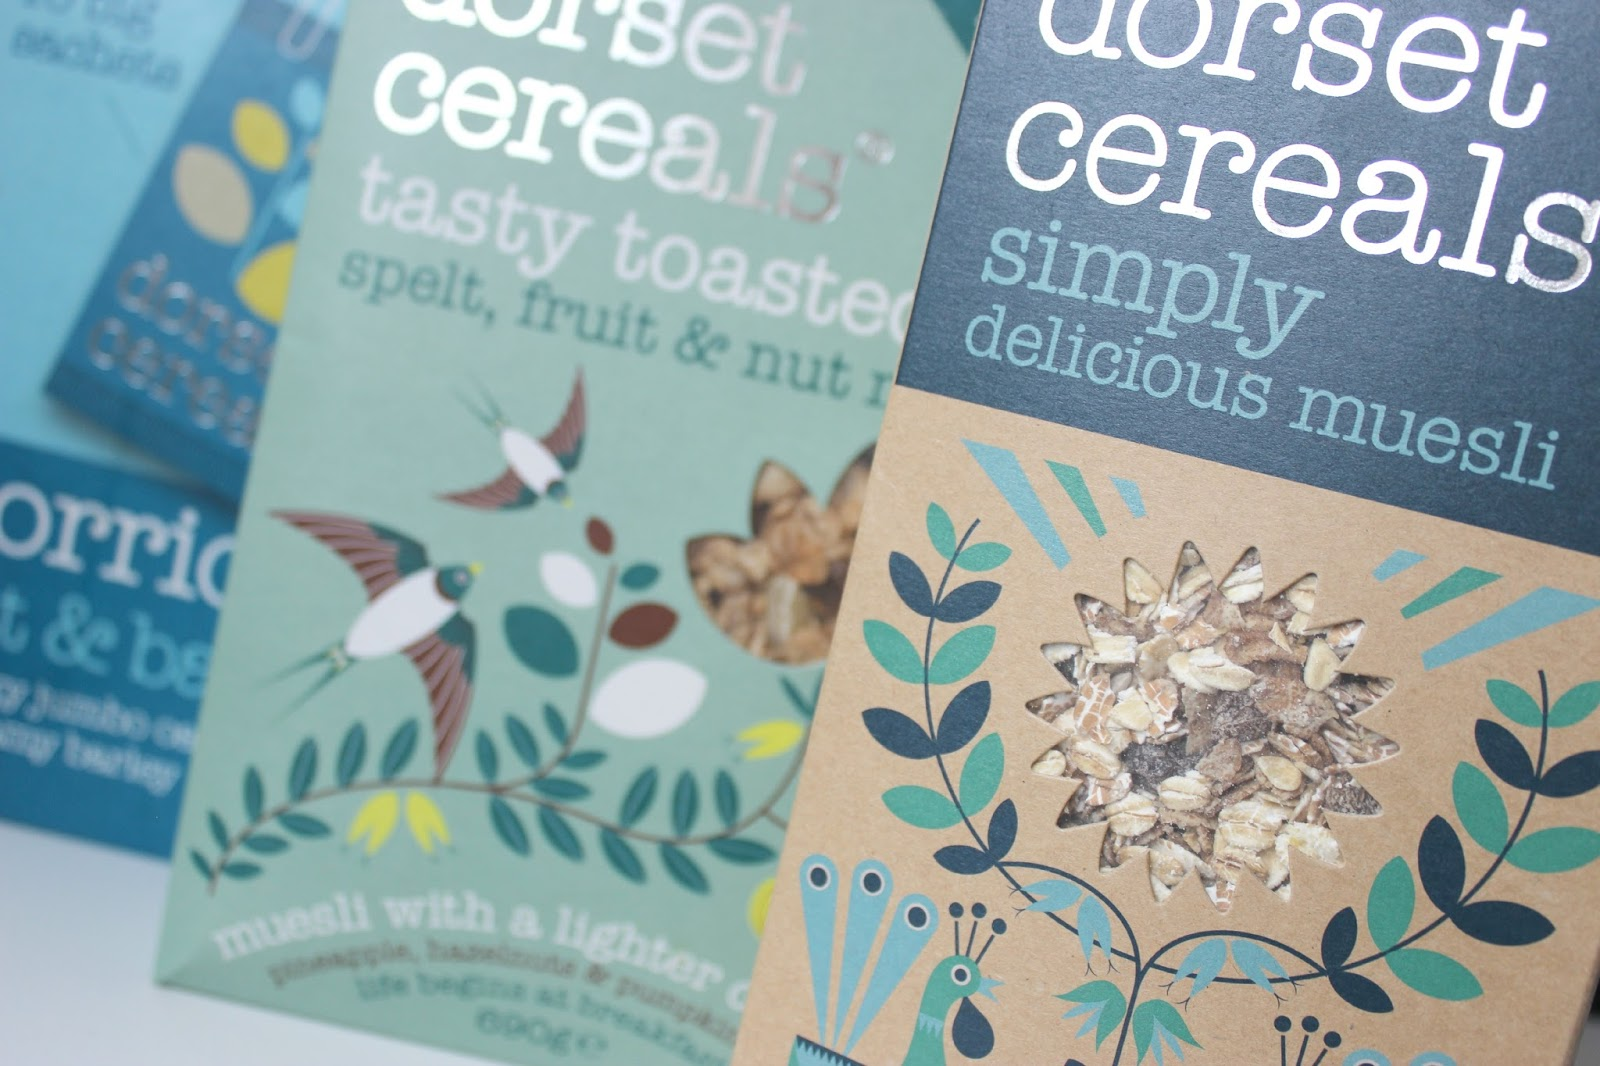 A picture of Dorset Cereals Simply Delicious Muesli